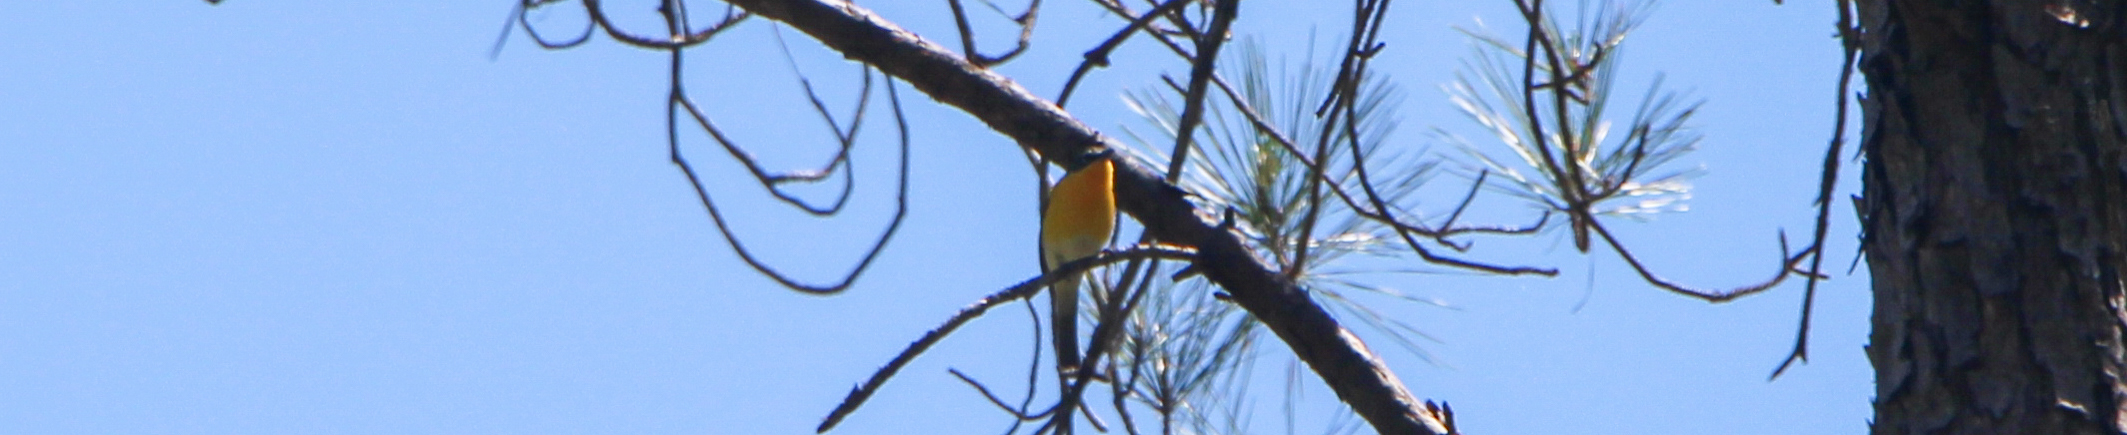 The Yellow-Breasted Chat of Lannahassee Creek